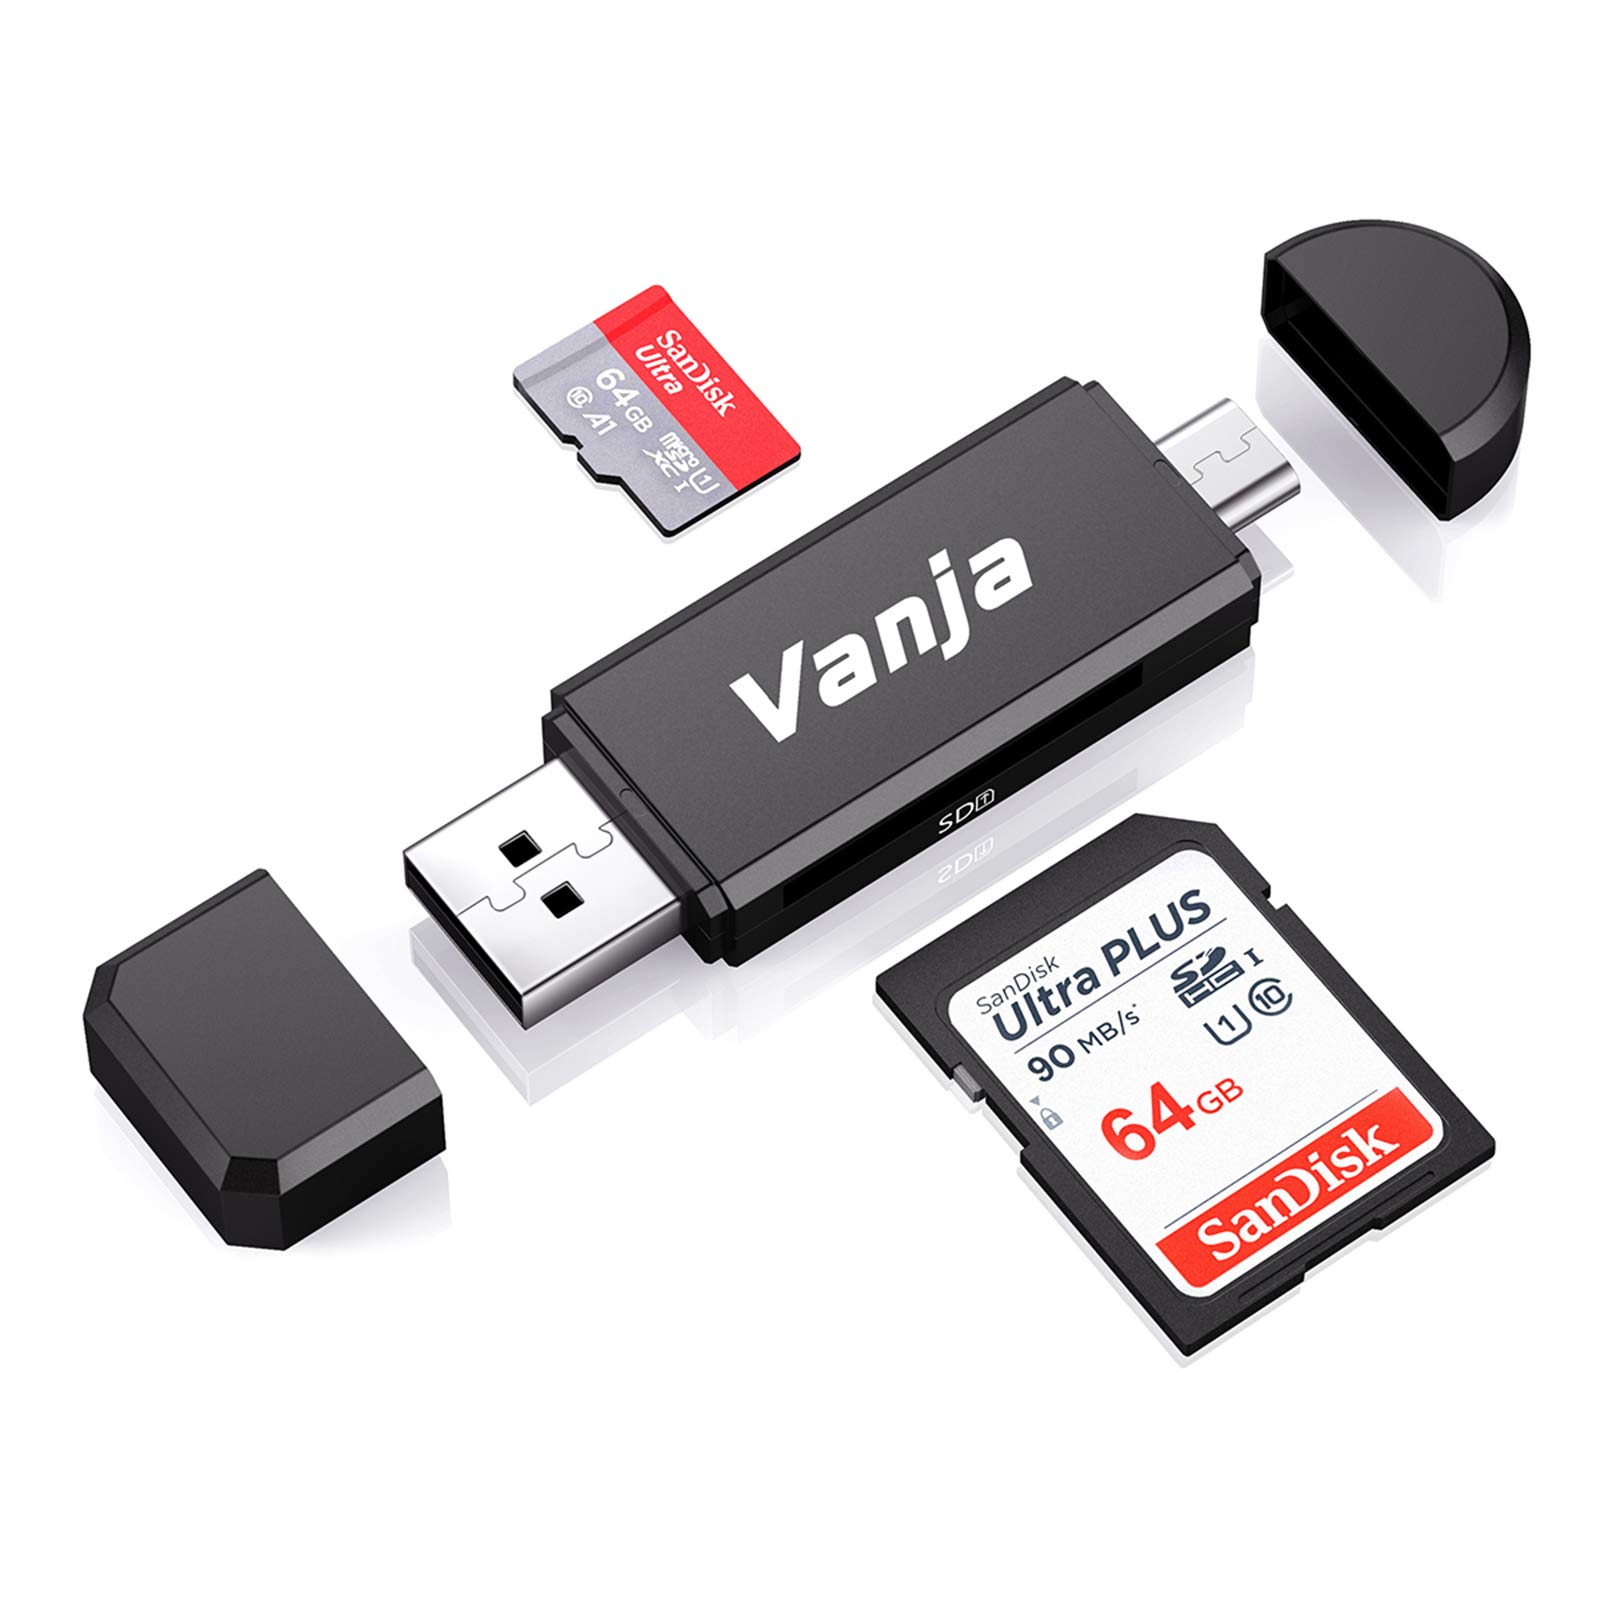 23% discount on a multi-function memory card reader